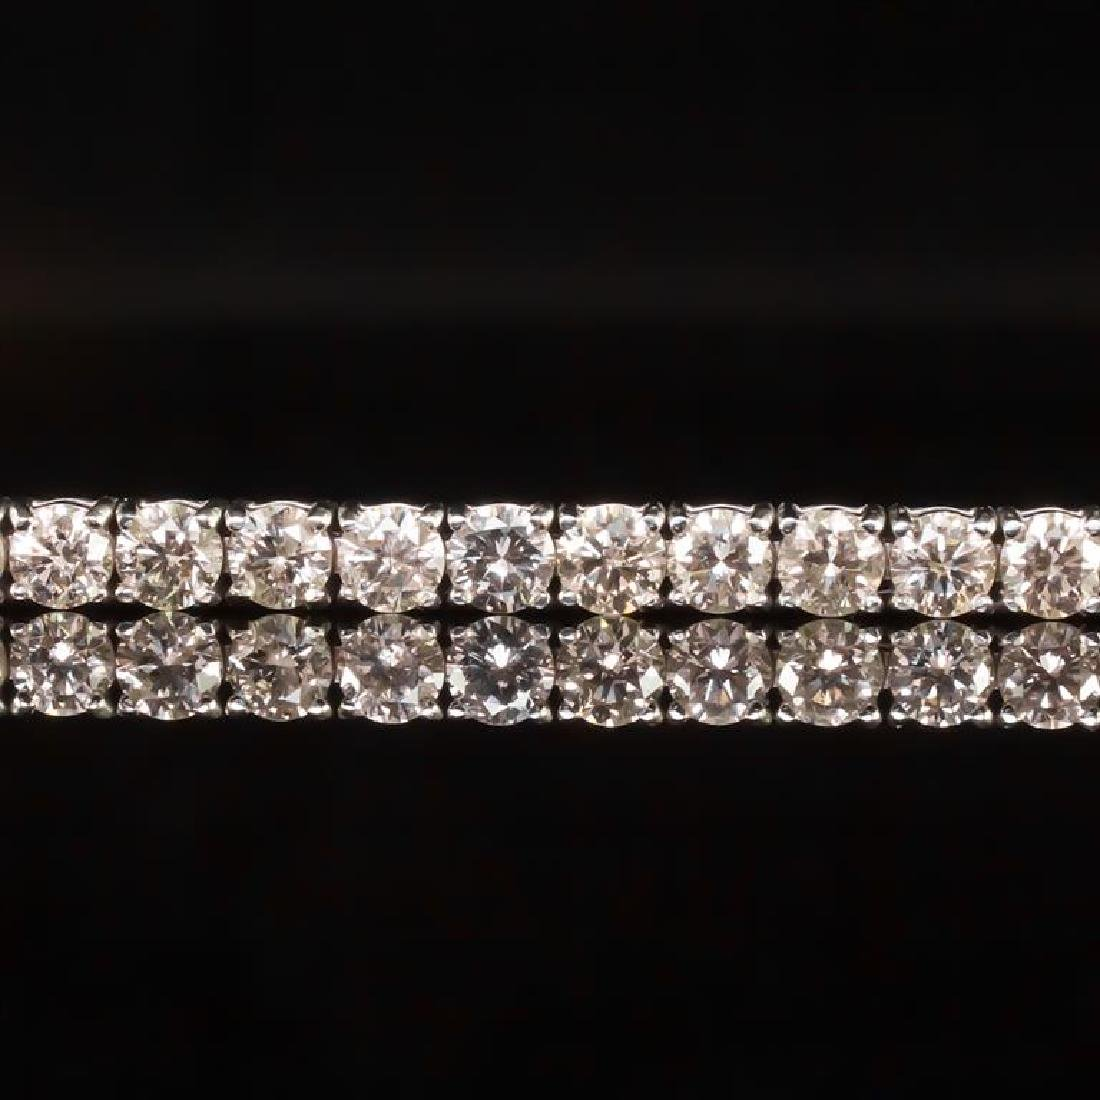 18K Gold 9.02ct Diamond Bracelet - 2